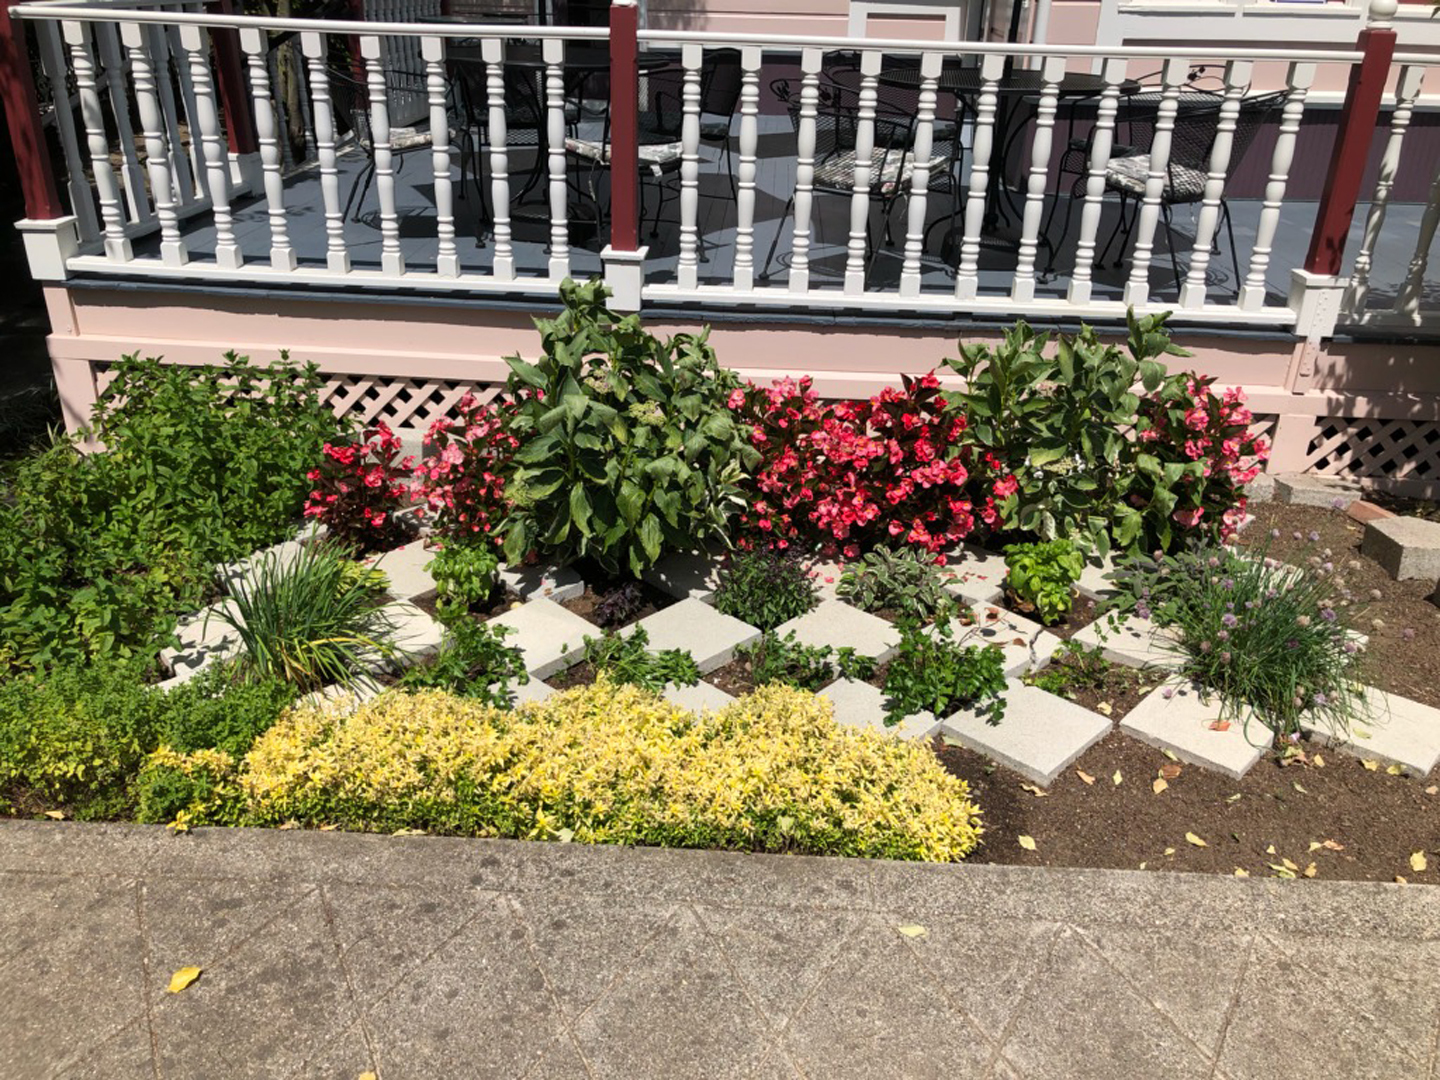 A close up of a flower garden in front of a building at Hennessey House.